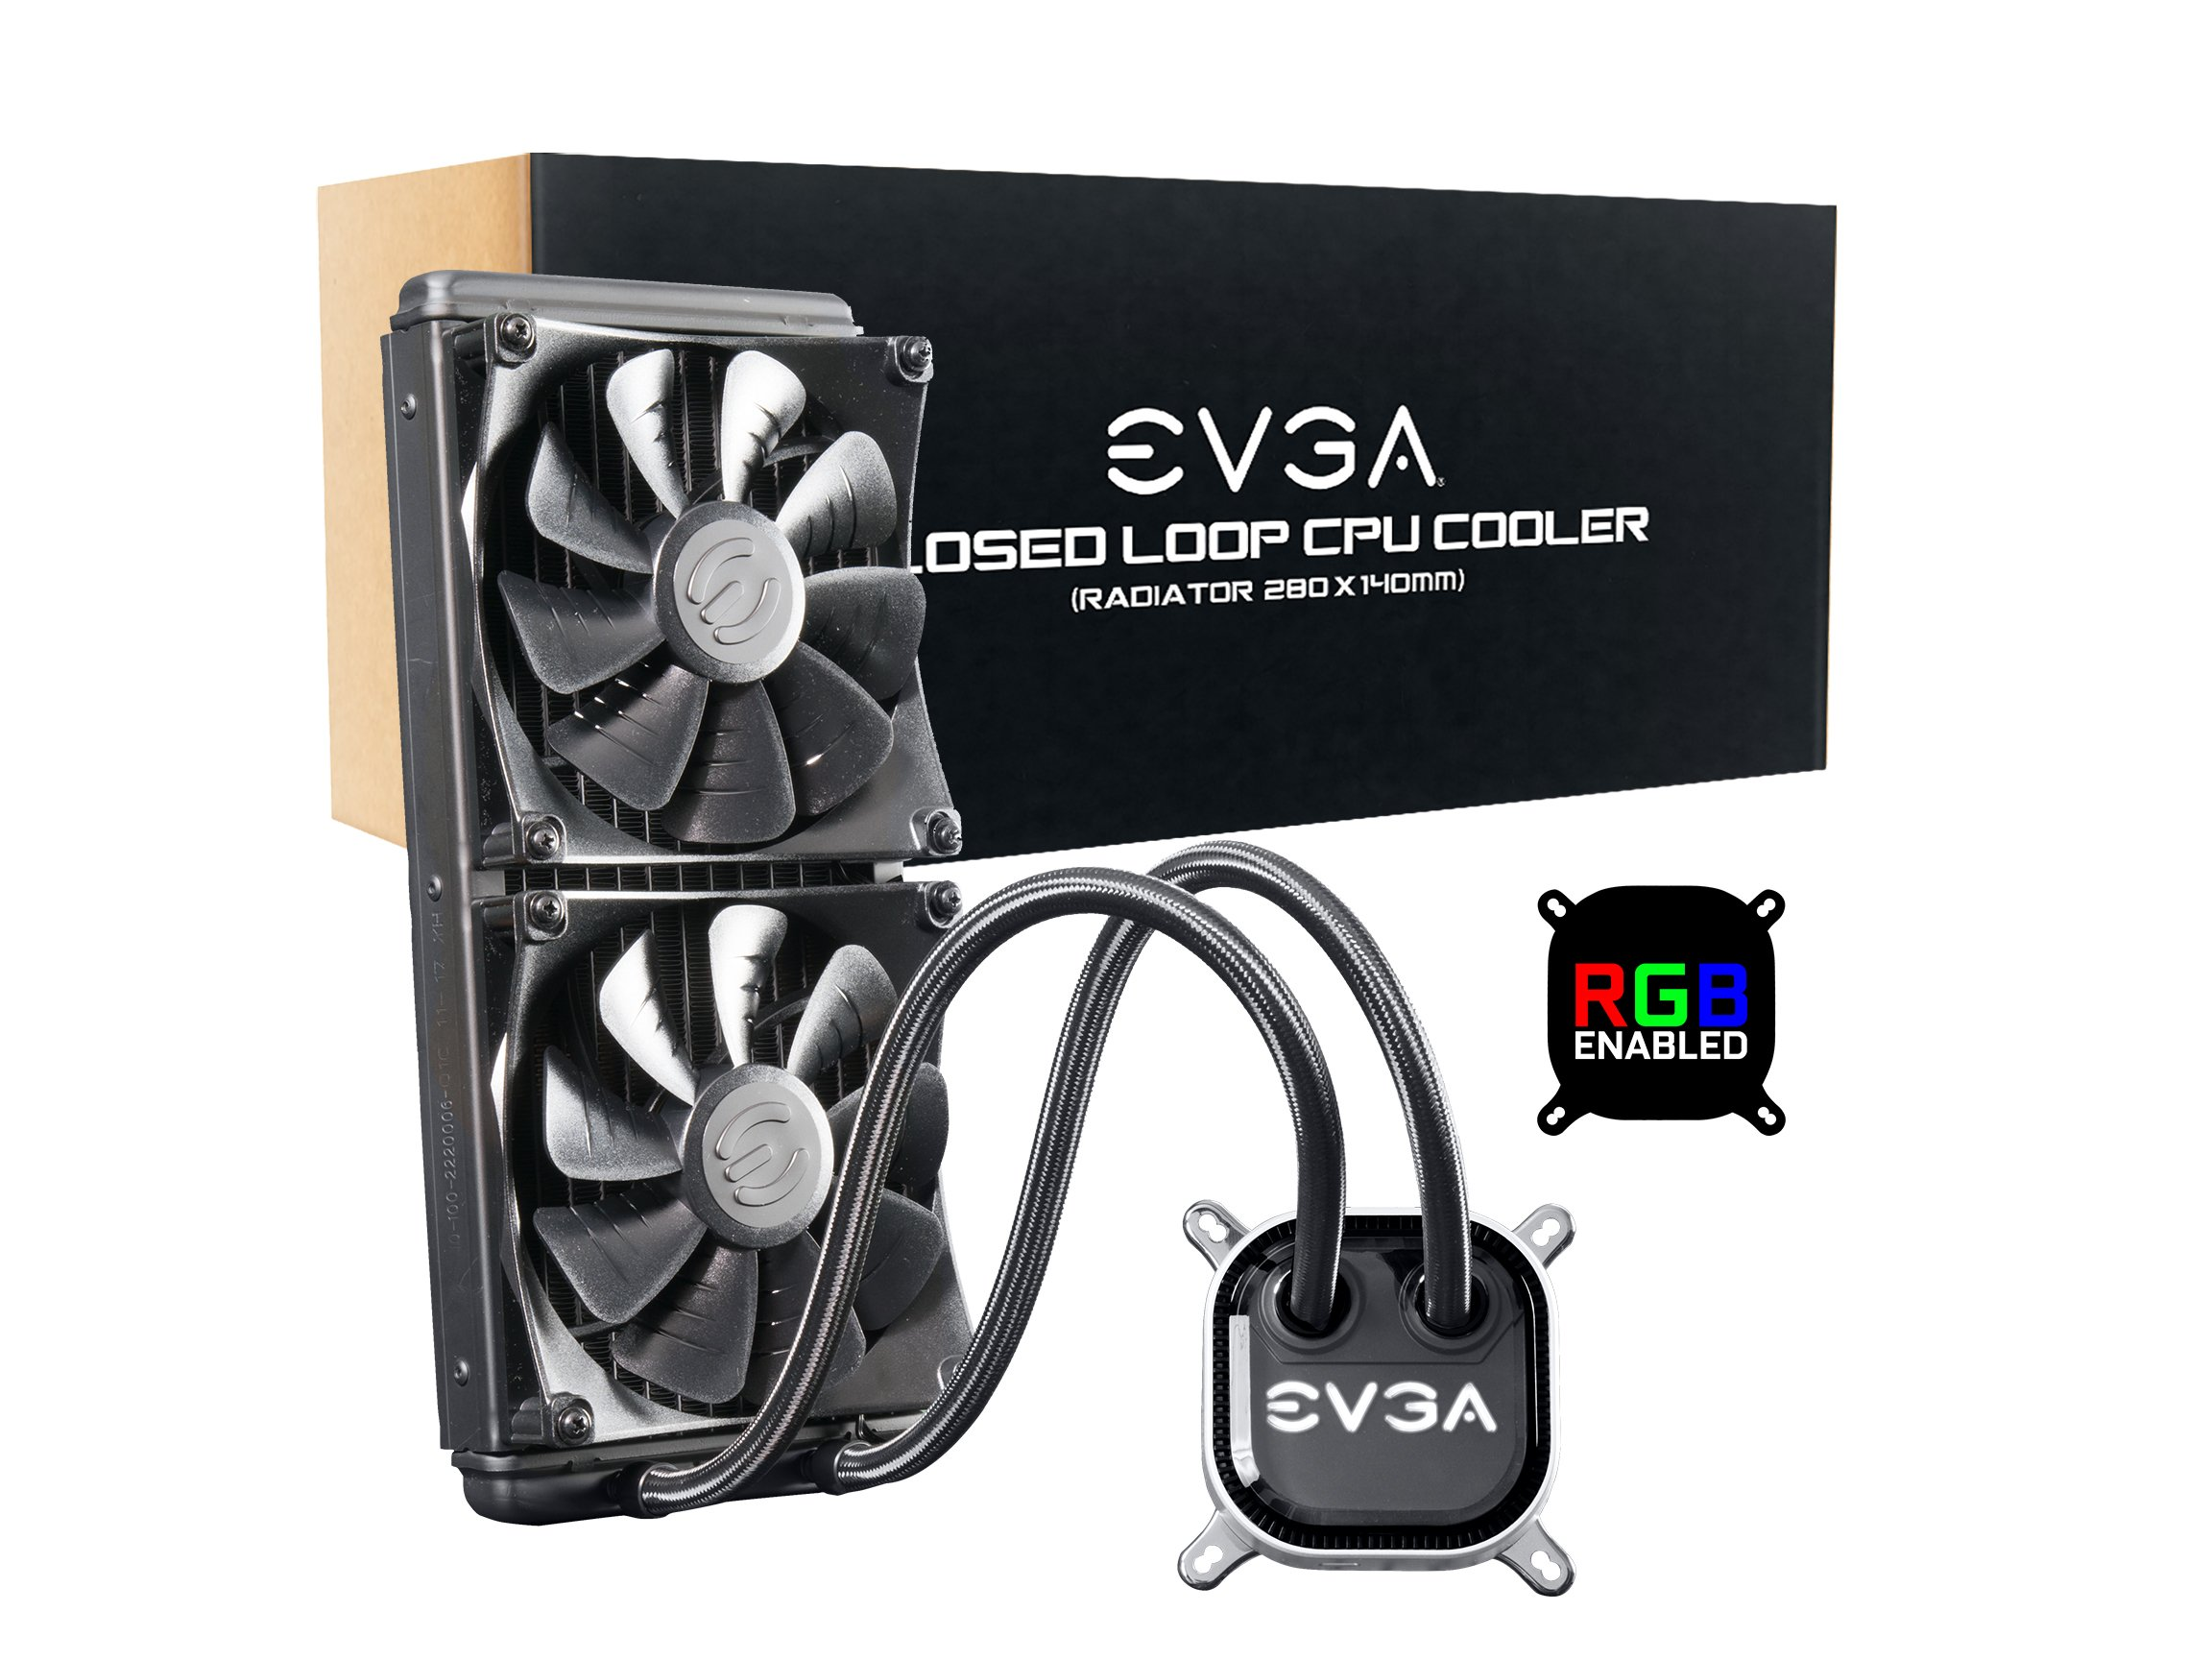 EVGA CLC 280 Liquid / Water CPU Cooler, RGB LED Cooling 400-HY-CL28-V1 by EVGA